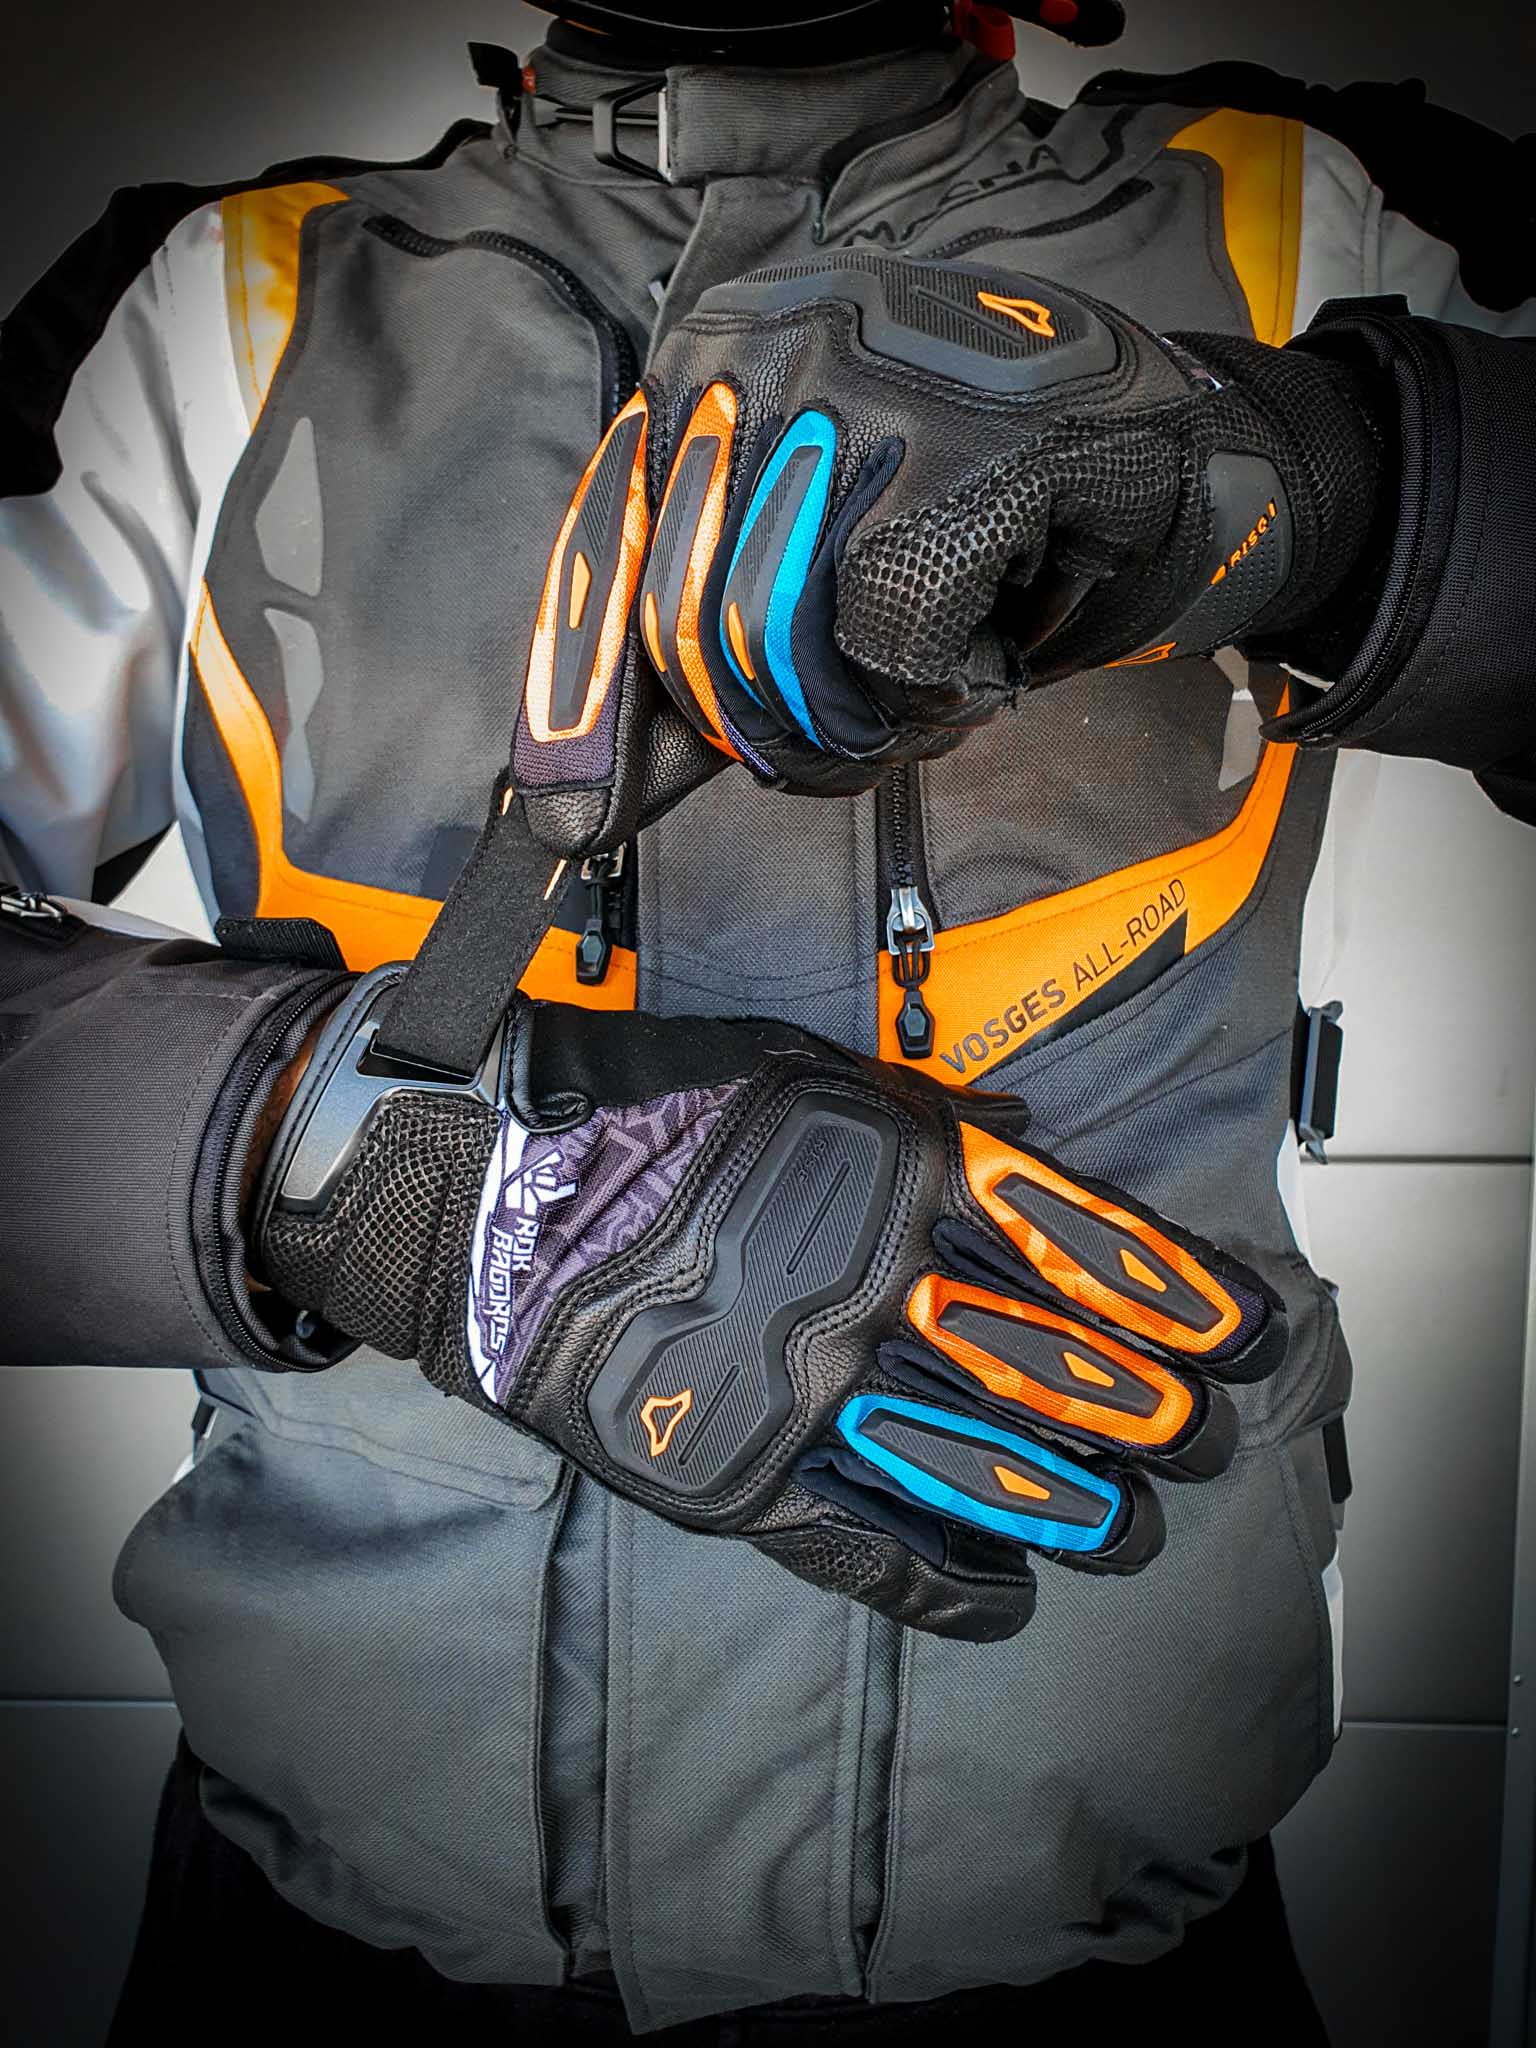 Motorcycle gloves - Macna HAROS | Rok Bagoros Edition |